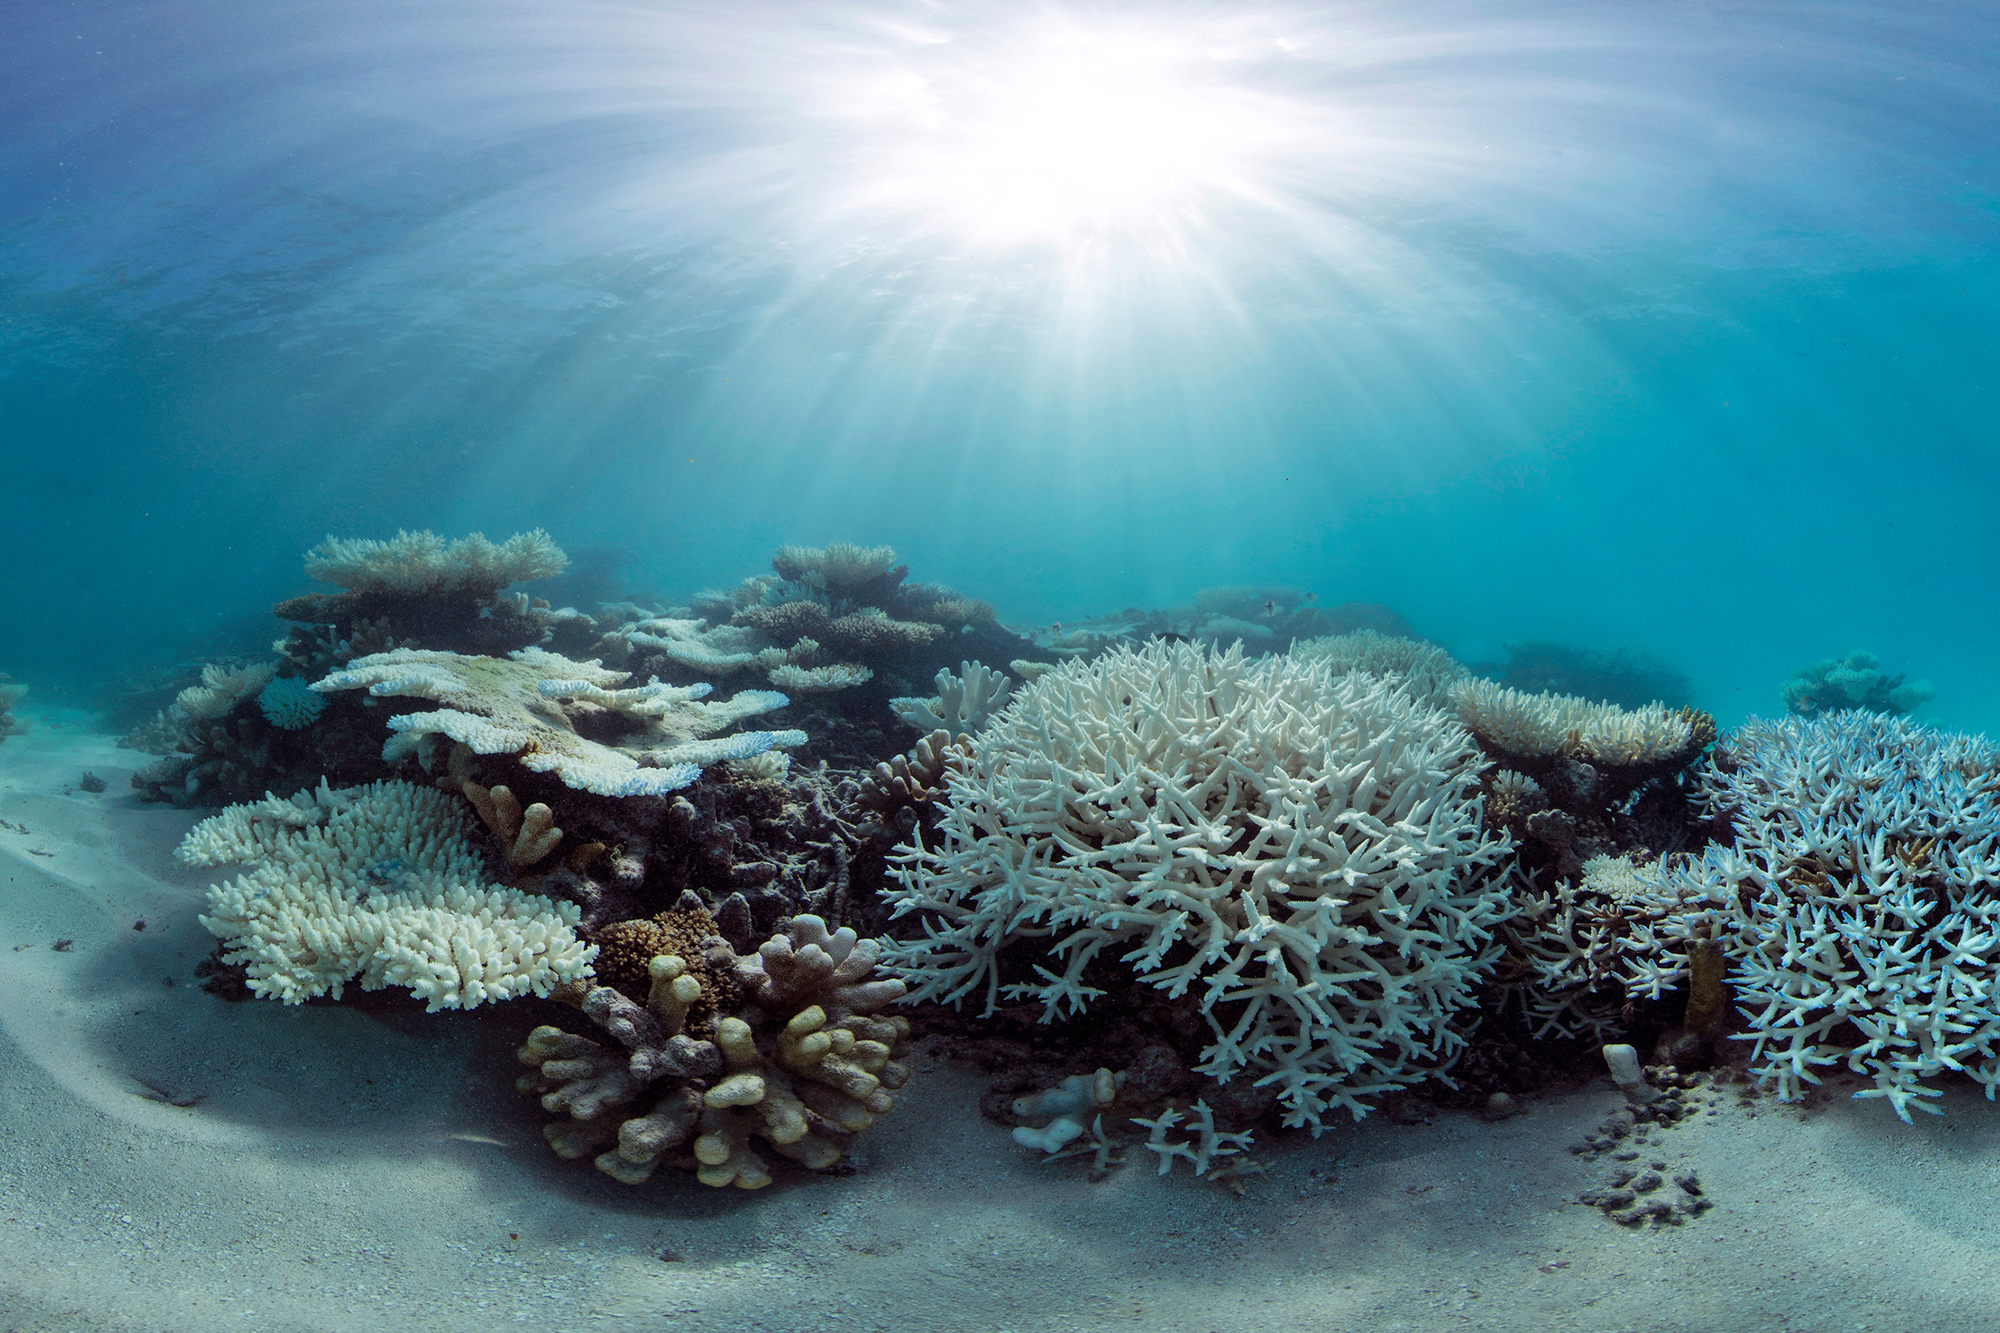 The bleaching in the Maldives in 2016 was particularly visual. Pristine reefs turned bright white and many died.